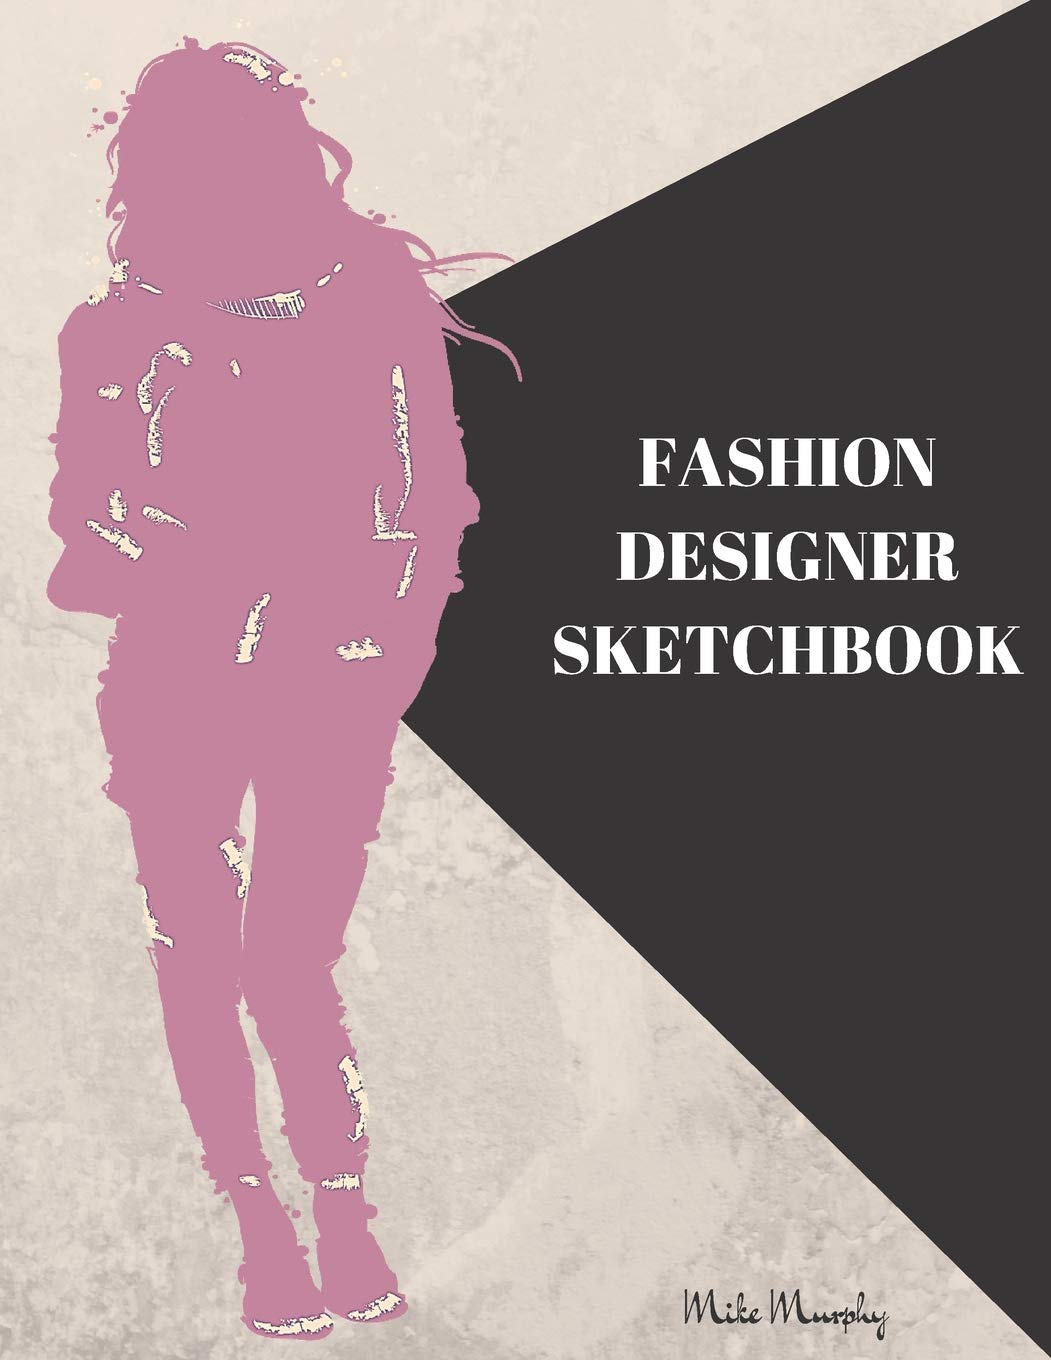 Amazon Com Fashion Designer Sketchbook Easily Sketch Your Fashion Design With Large Women Figure Template In Different Poses Fashionistas 9781723741081 Murphy Mike Pioneer Fashion Coloring Carolyn Books